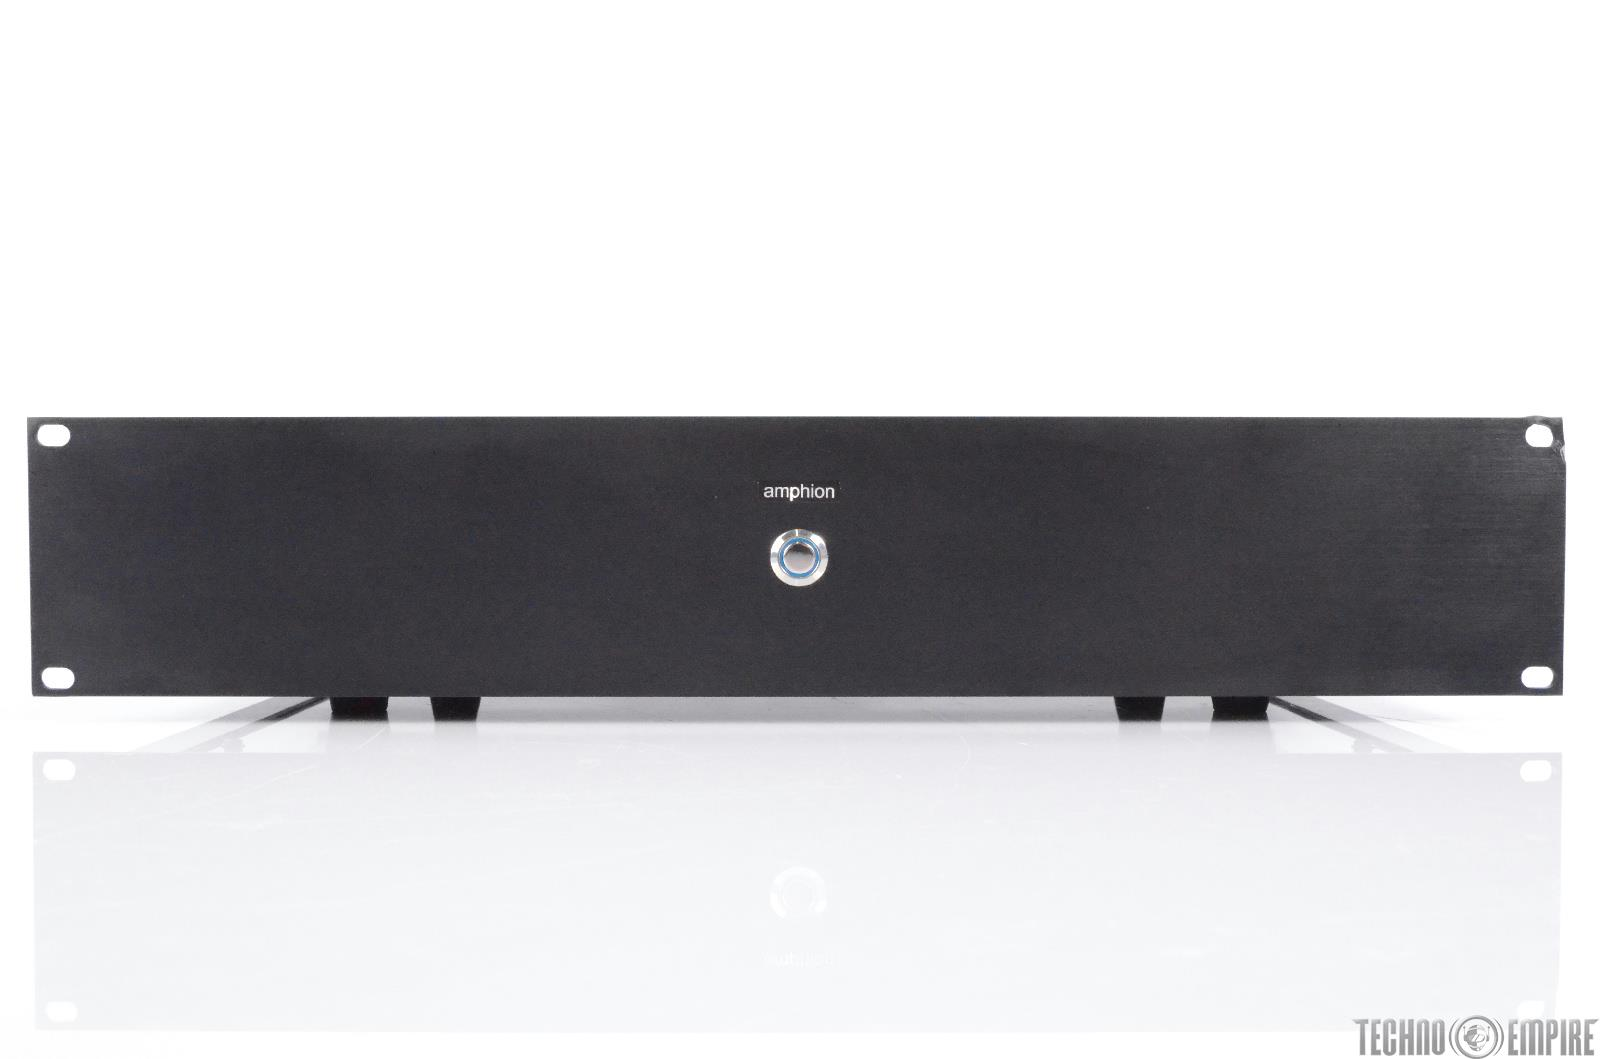 Amphion Amp500 Stereo 500W x 2 Power Amplifier Amp 500 #29925